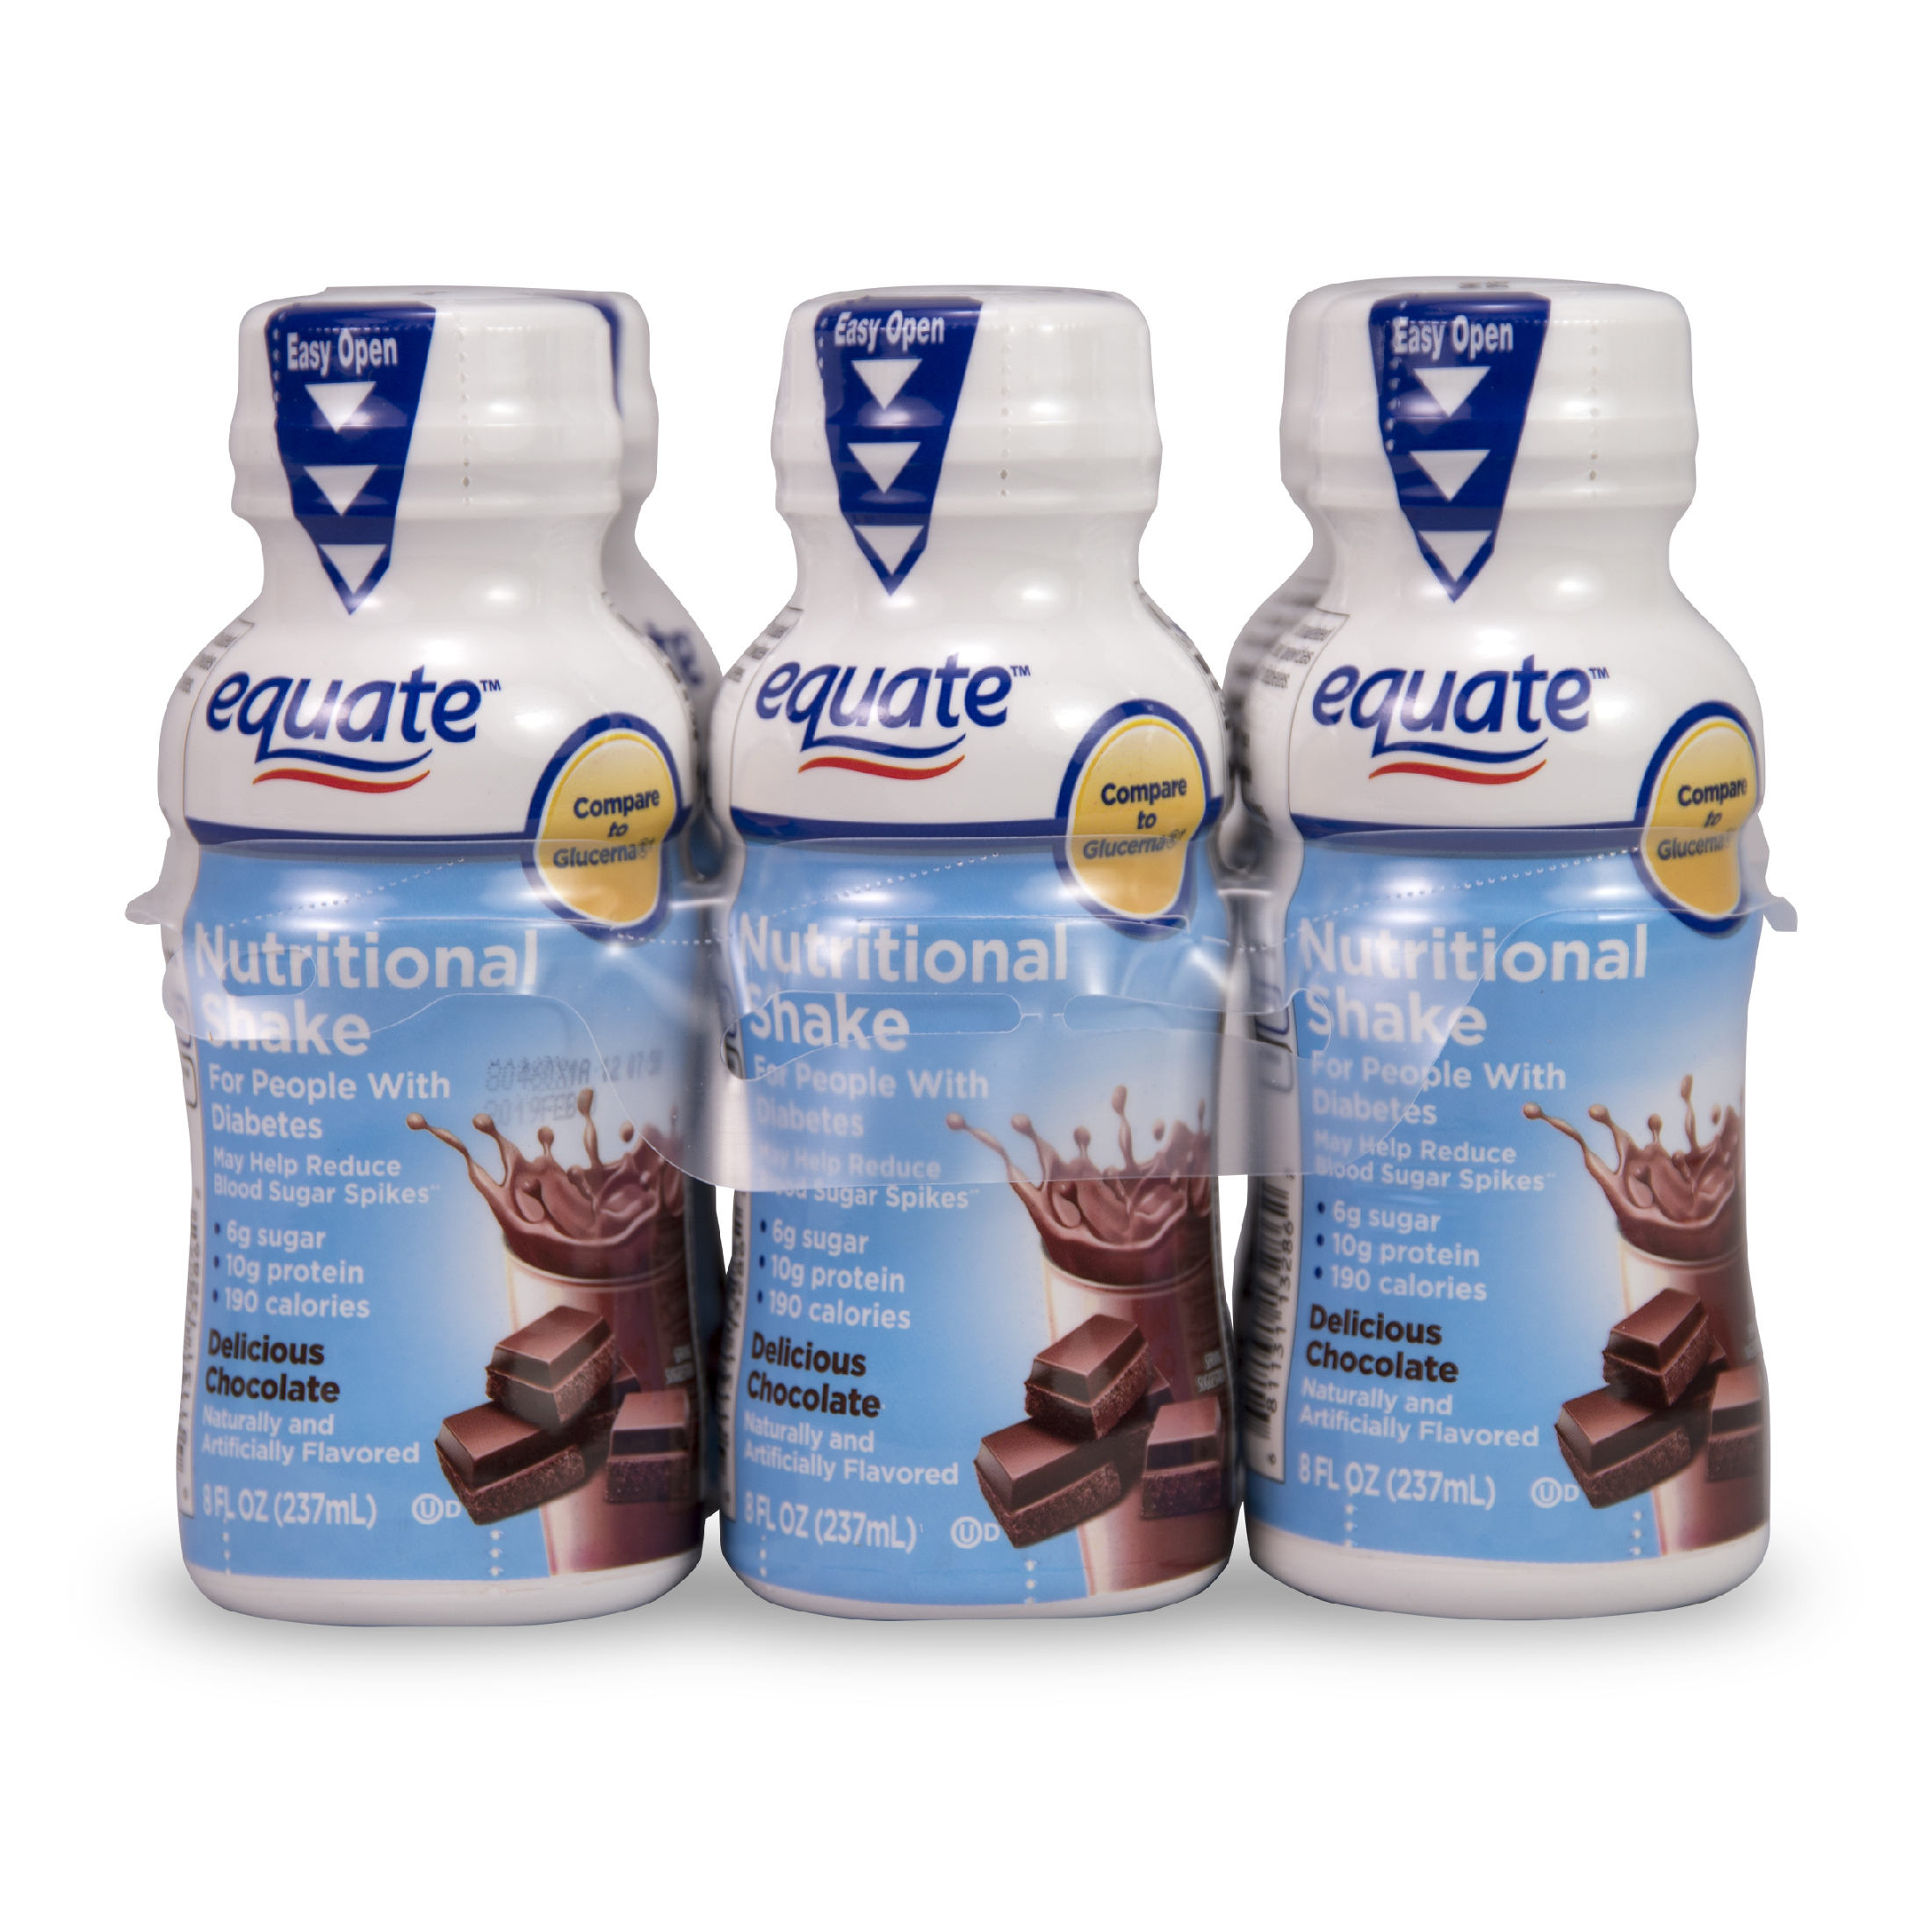 Equate Delicious Diabetic Chocolate Nutritional Shake, 8 Fl Oz, 6 Ct